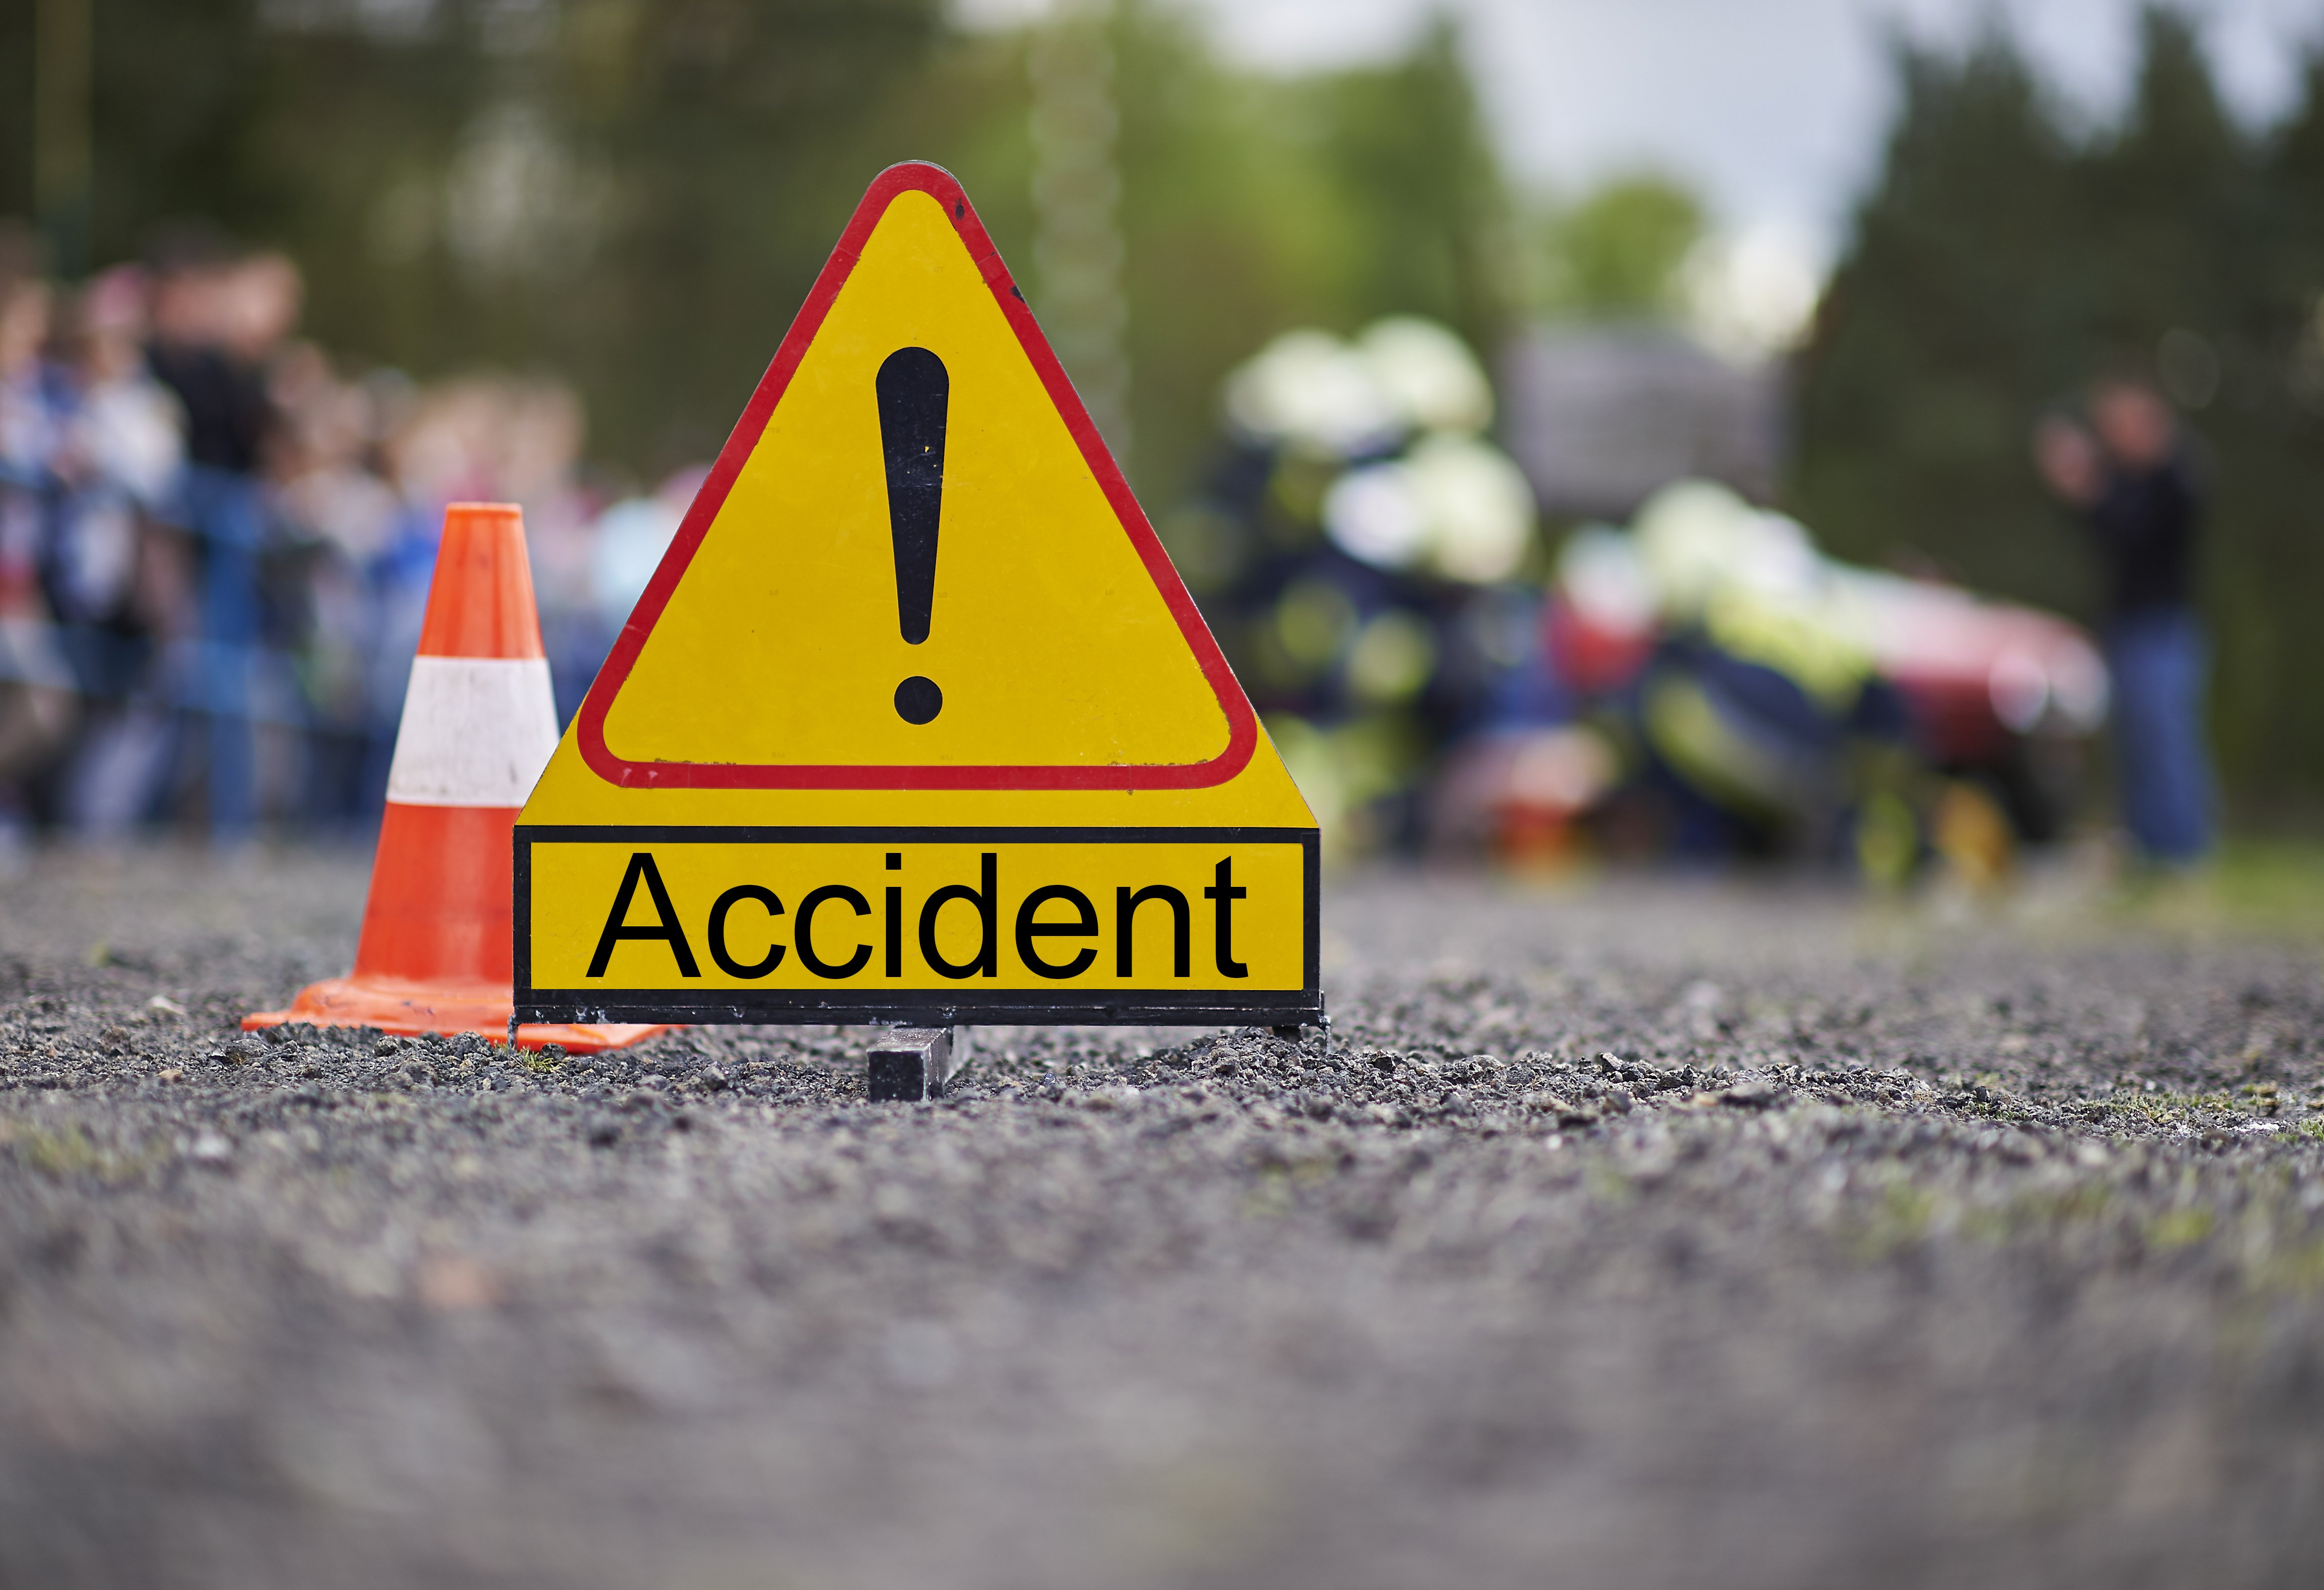 A photo of a road sign indicating an accident | Photo: Shutterstock